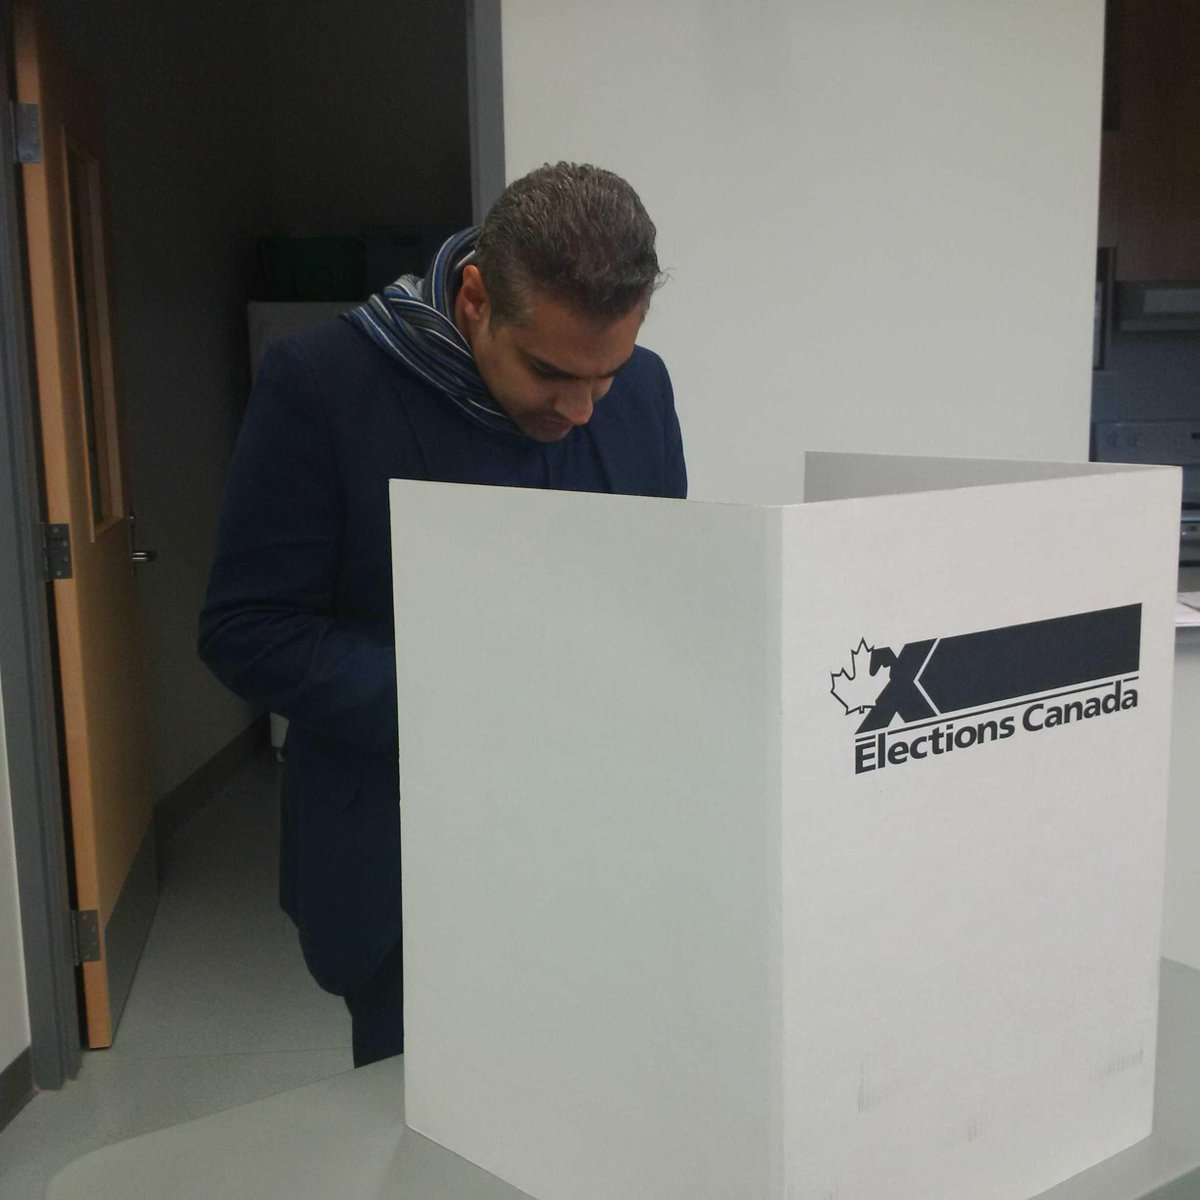 Euphoric! I could get used to freedom and democracy...... #elexn42 #Canada https://t.co/KydcnXzaLX